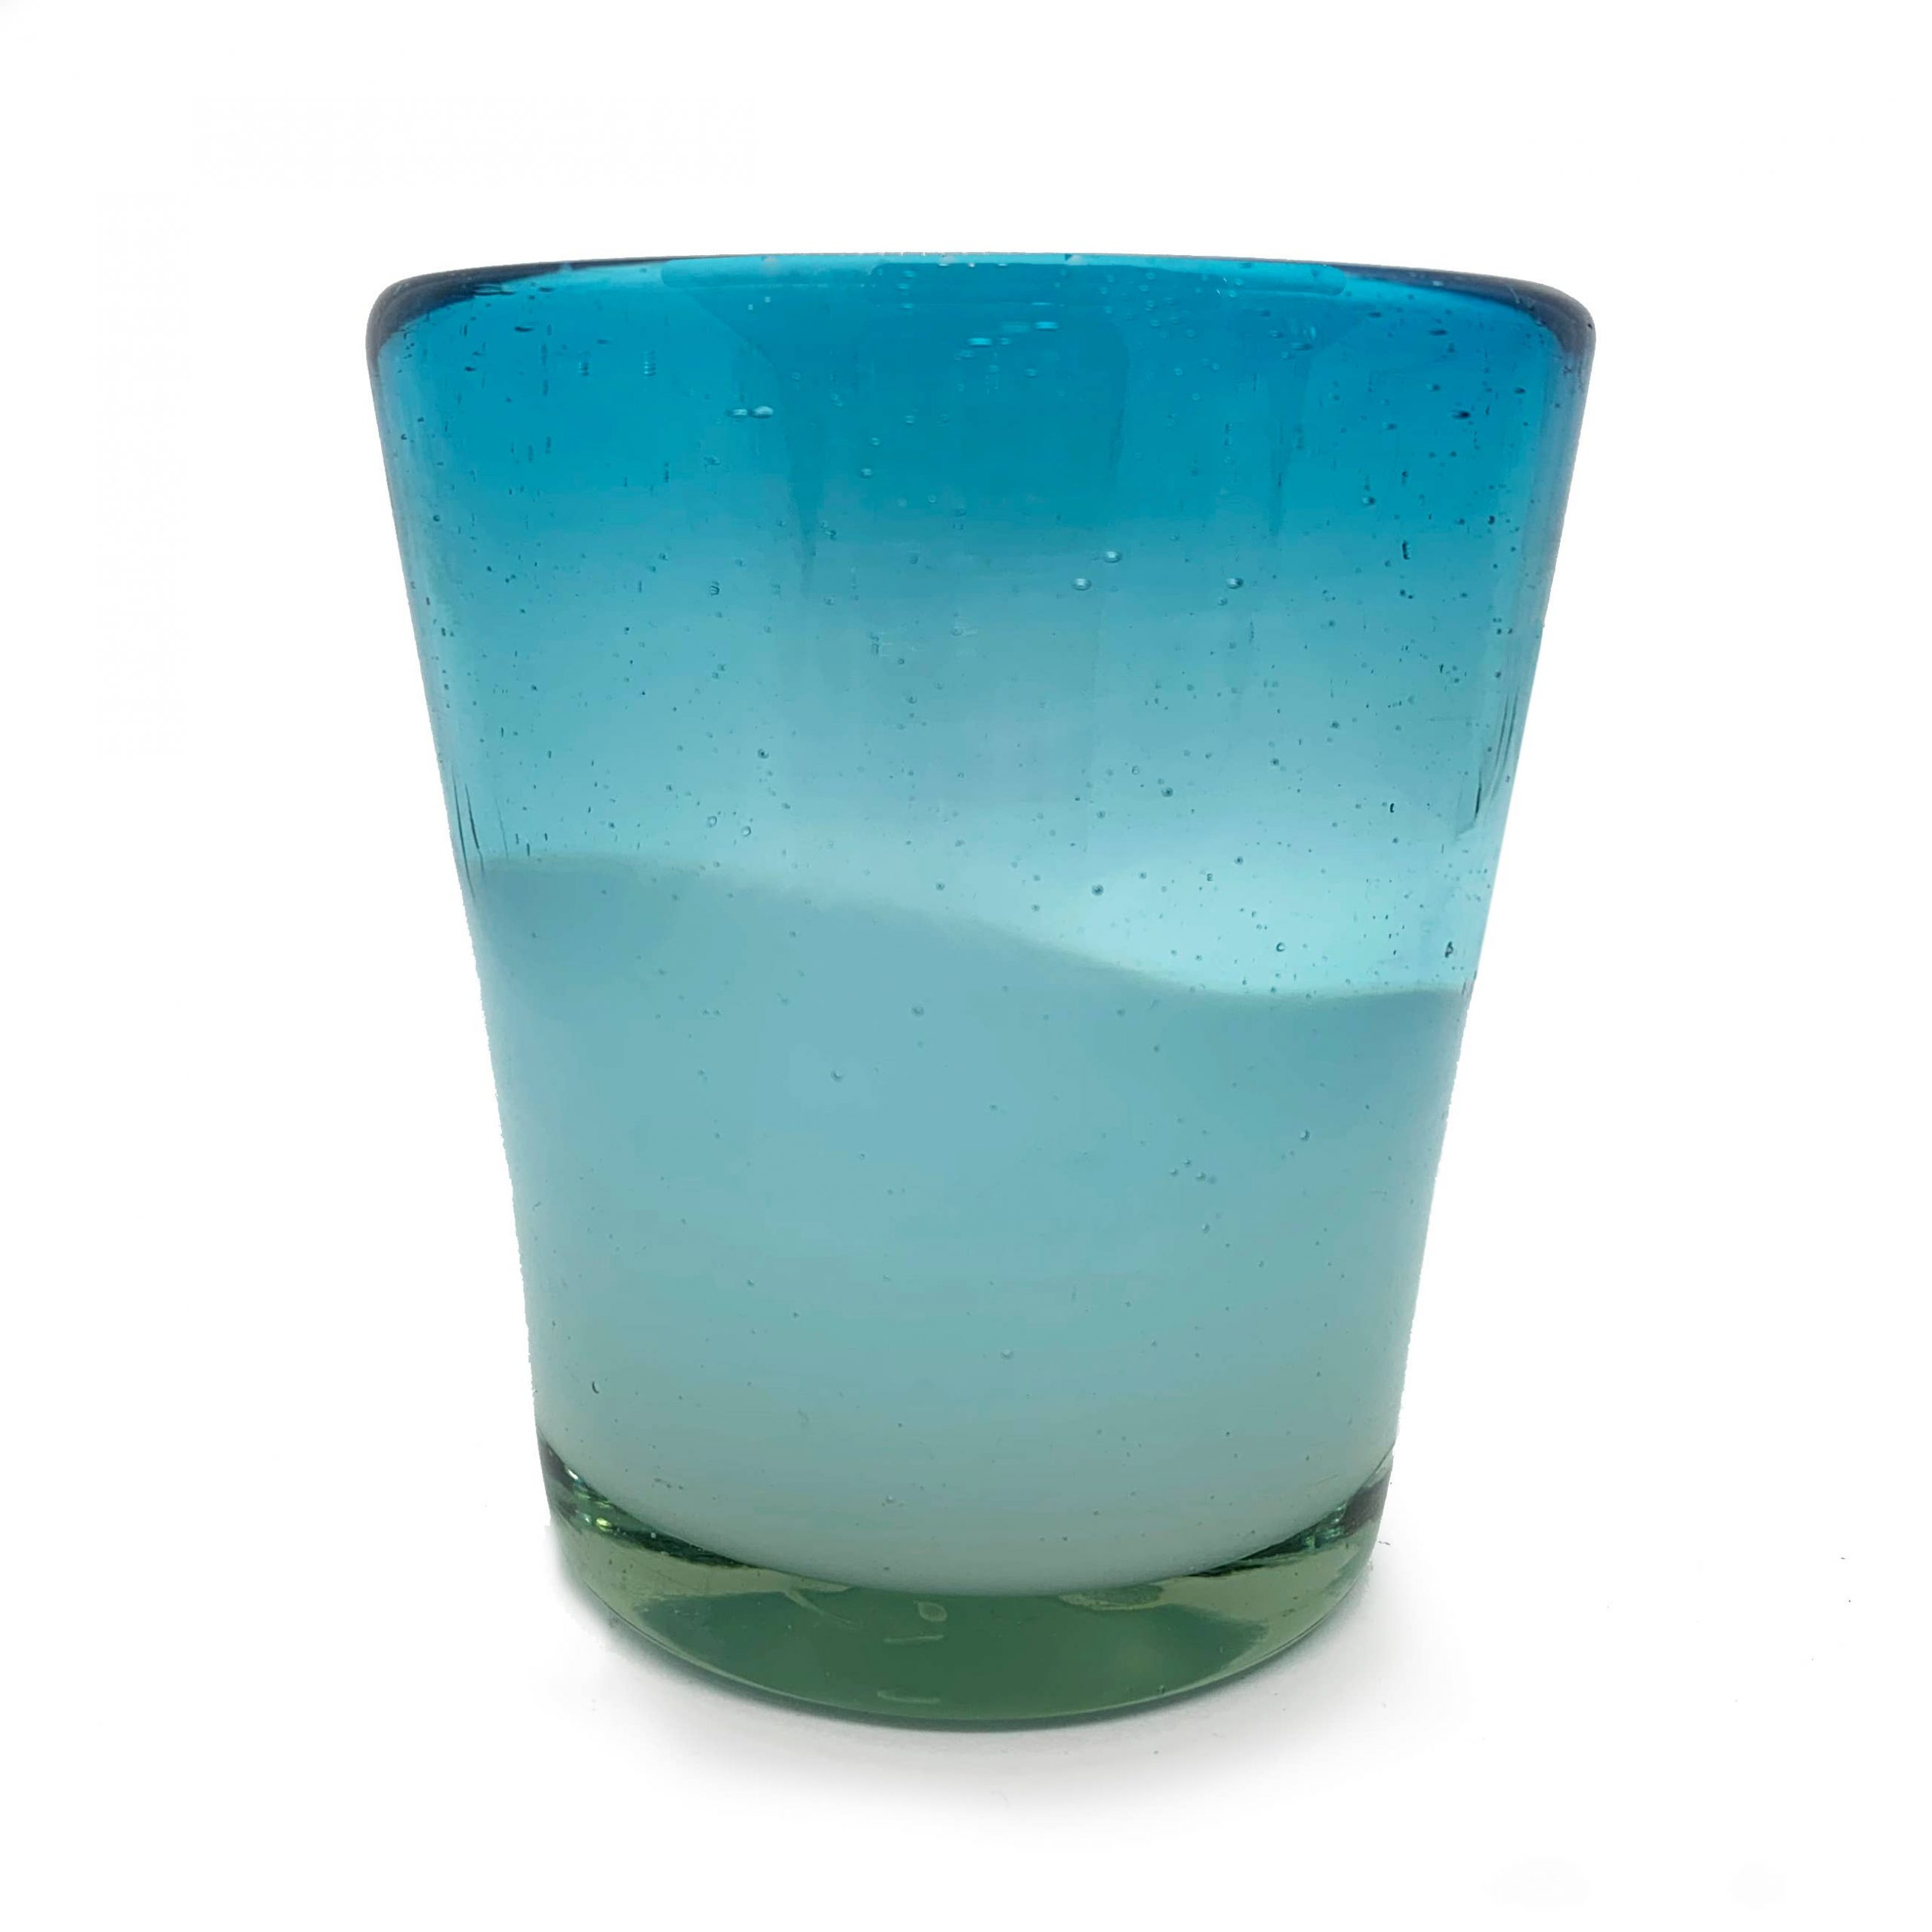 Mexican Handblown Glasses - Aqua by Cocina